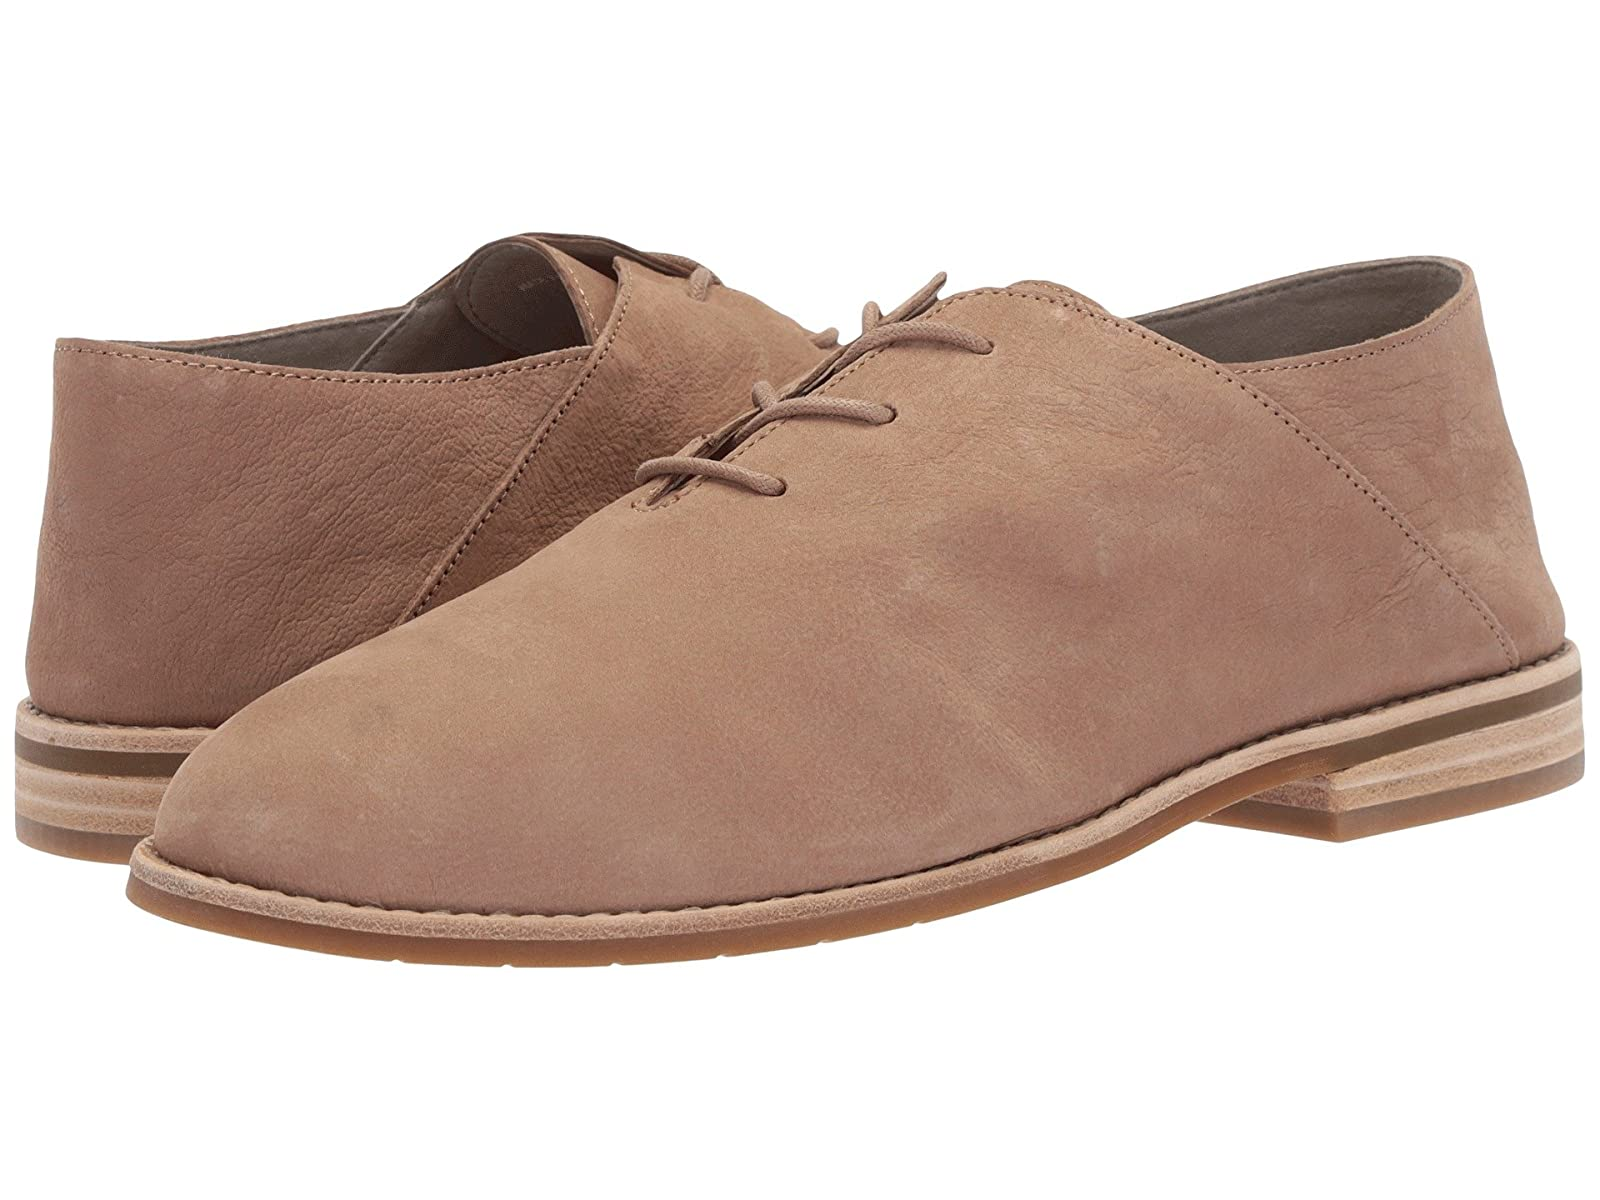 Eileen Fisher FresnoCheap and distinctive eye-catching shoes